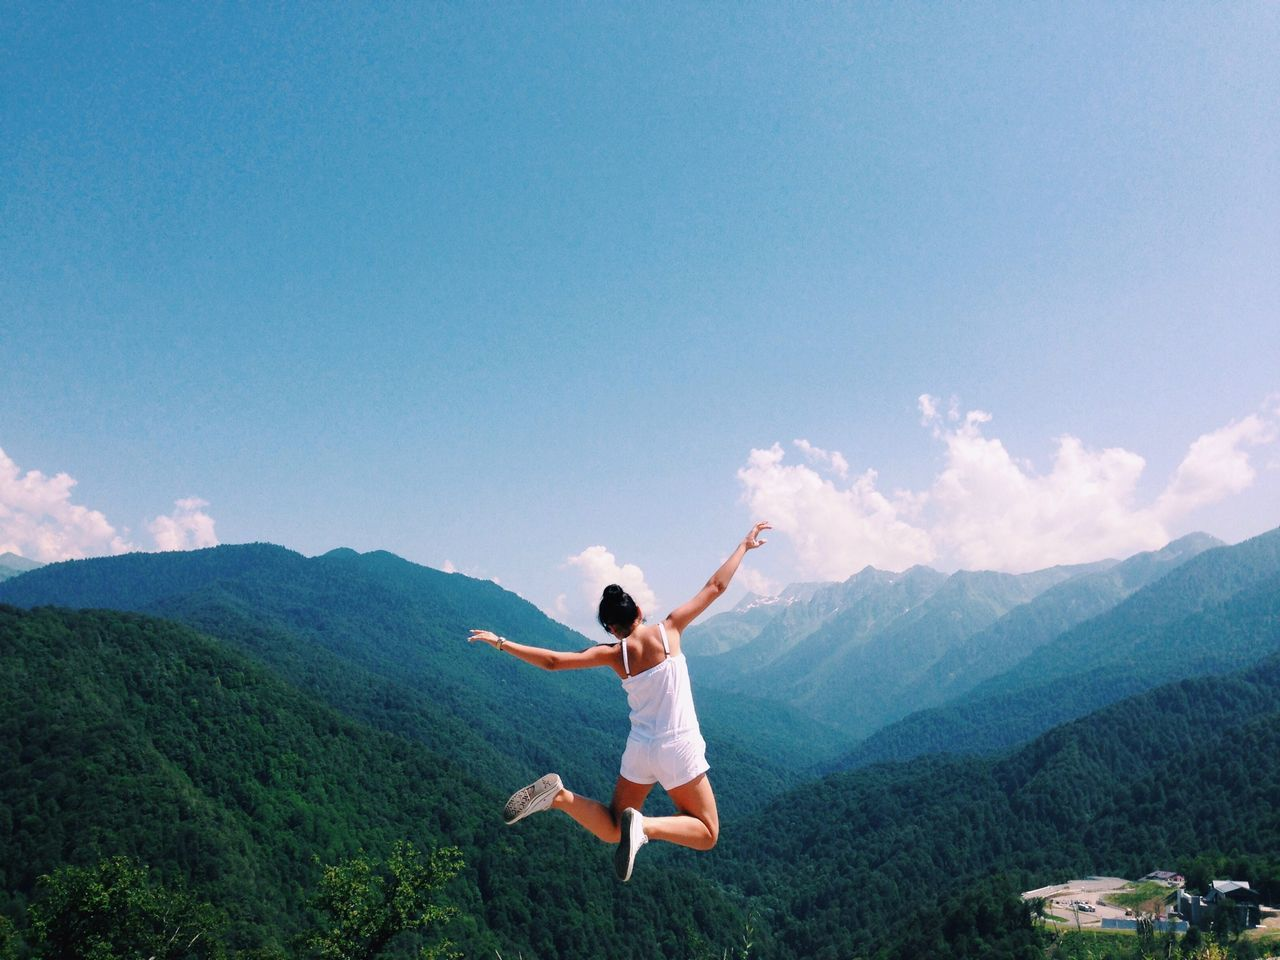 Woman jumping against mountains